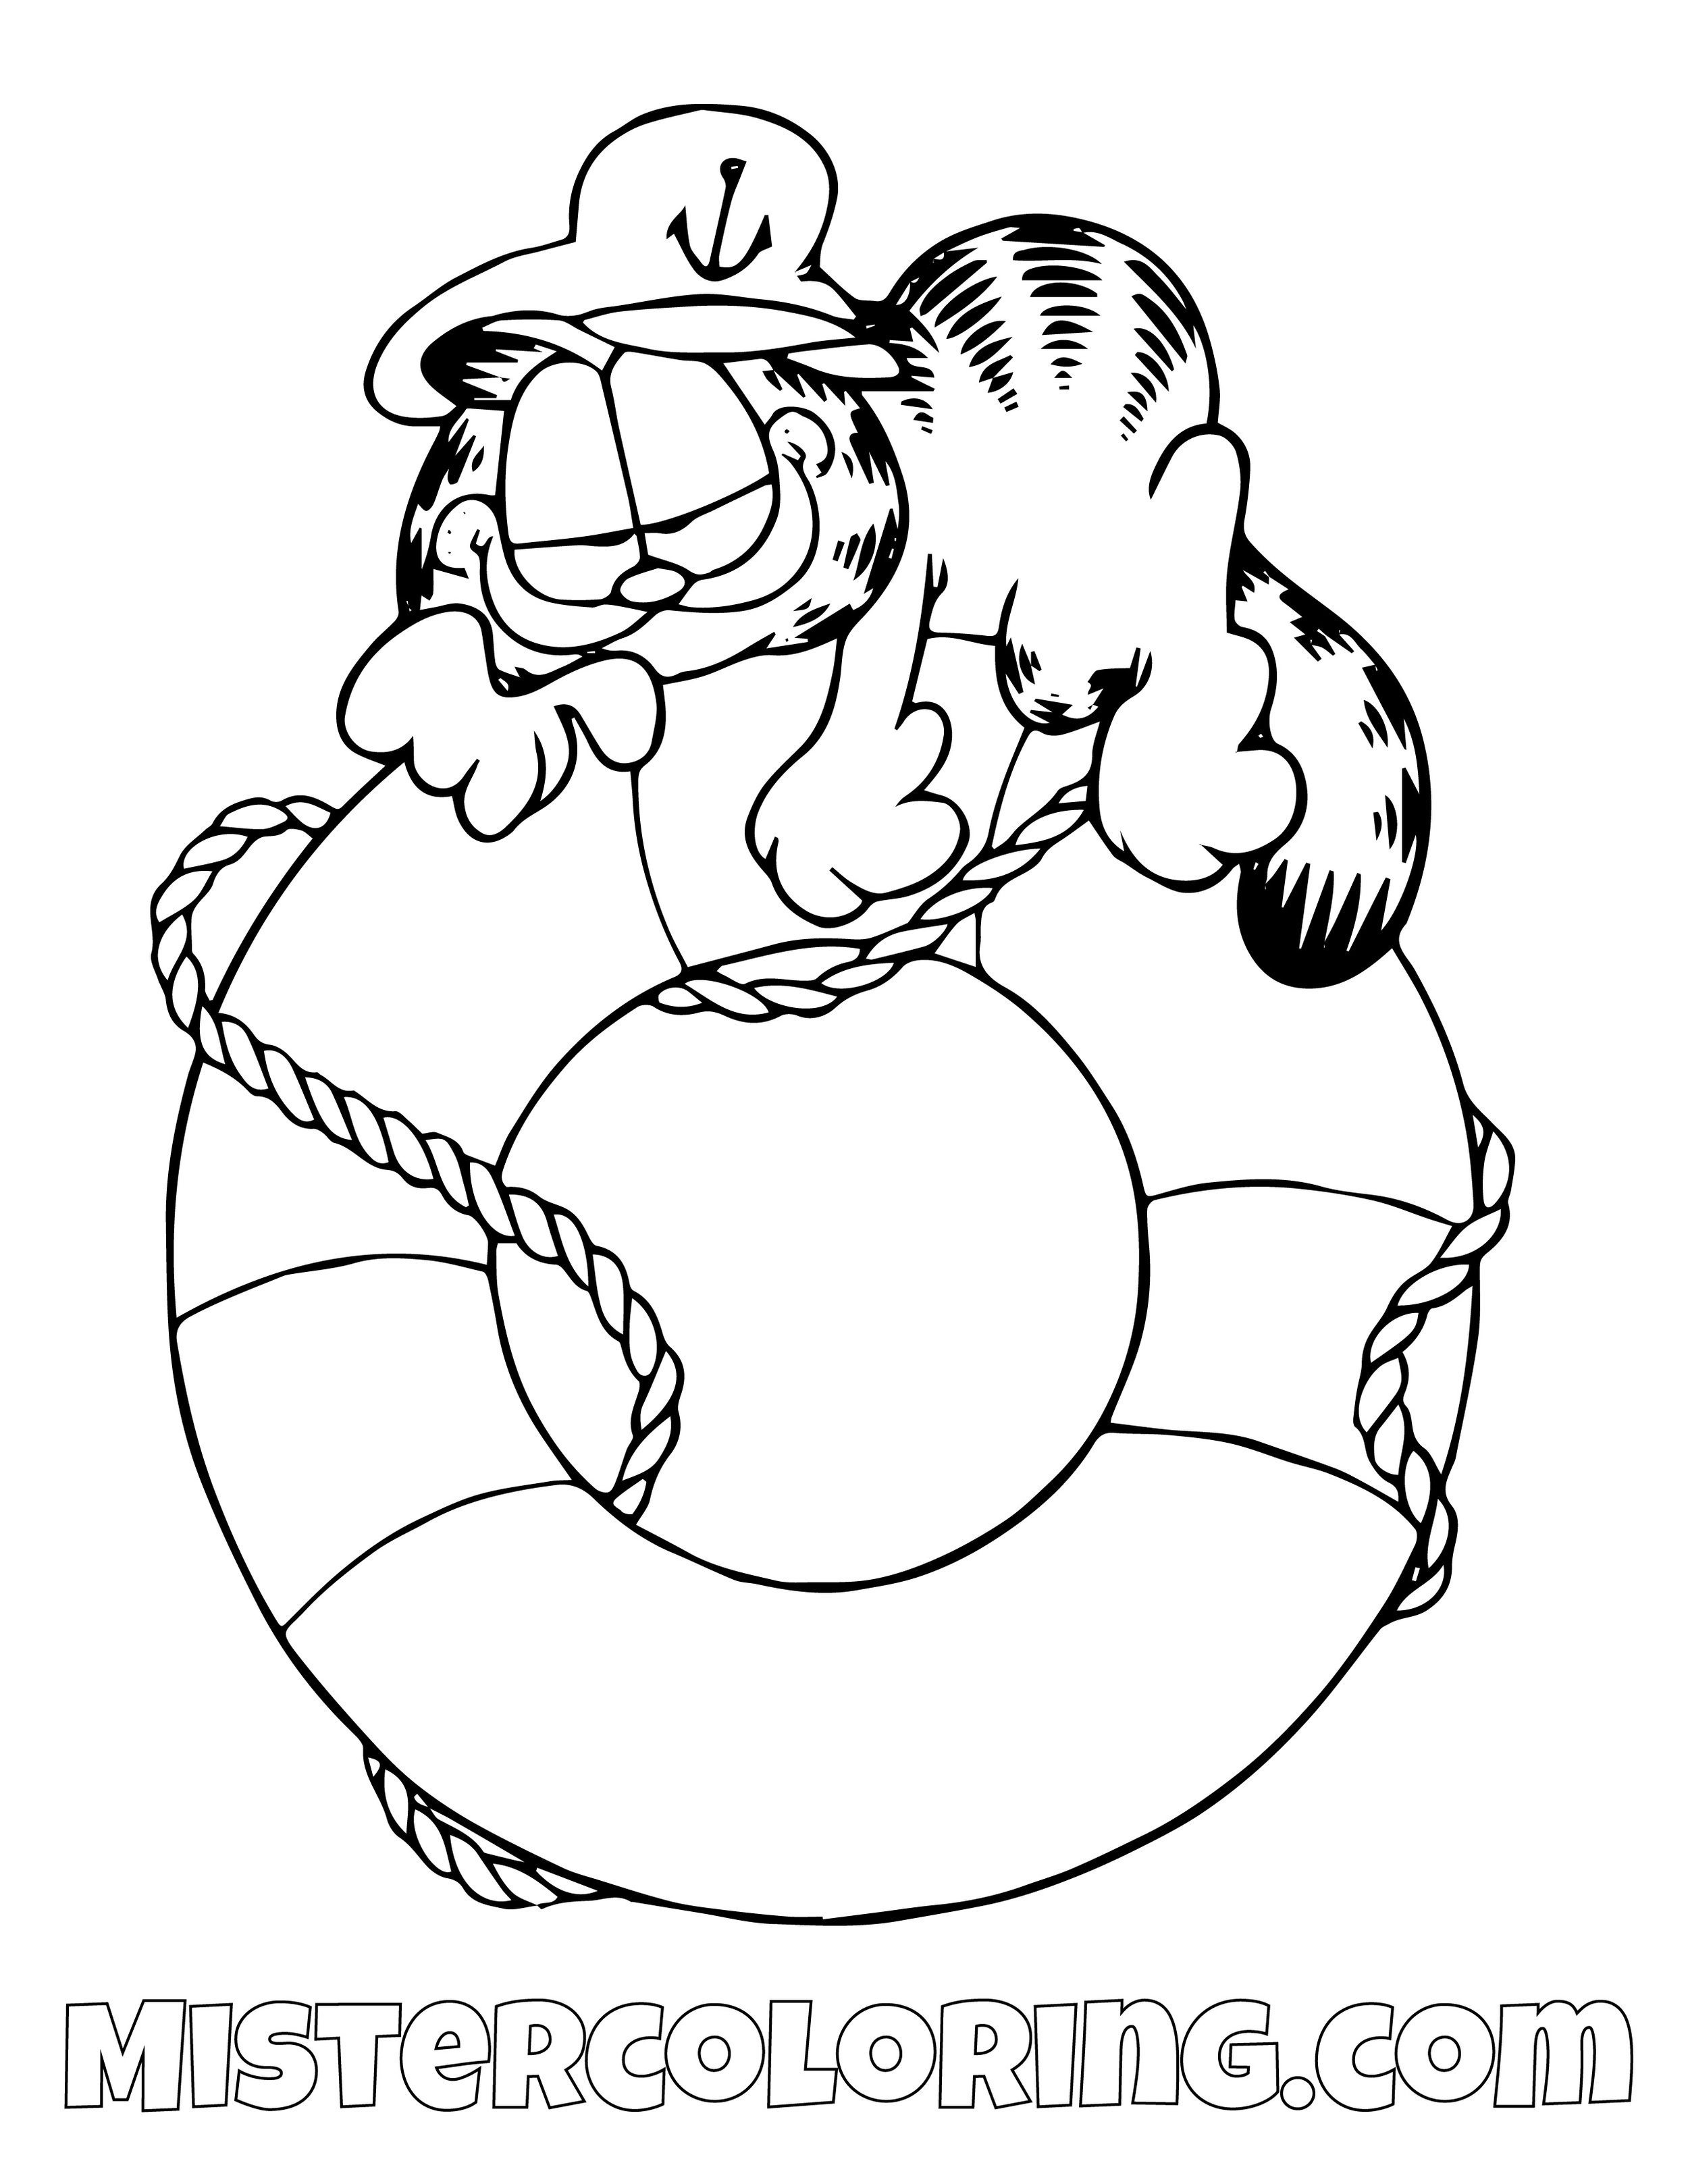 Garfield On A Life Preserver Coloring Page